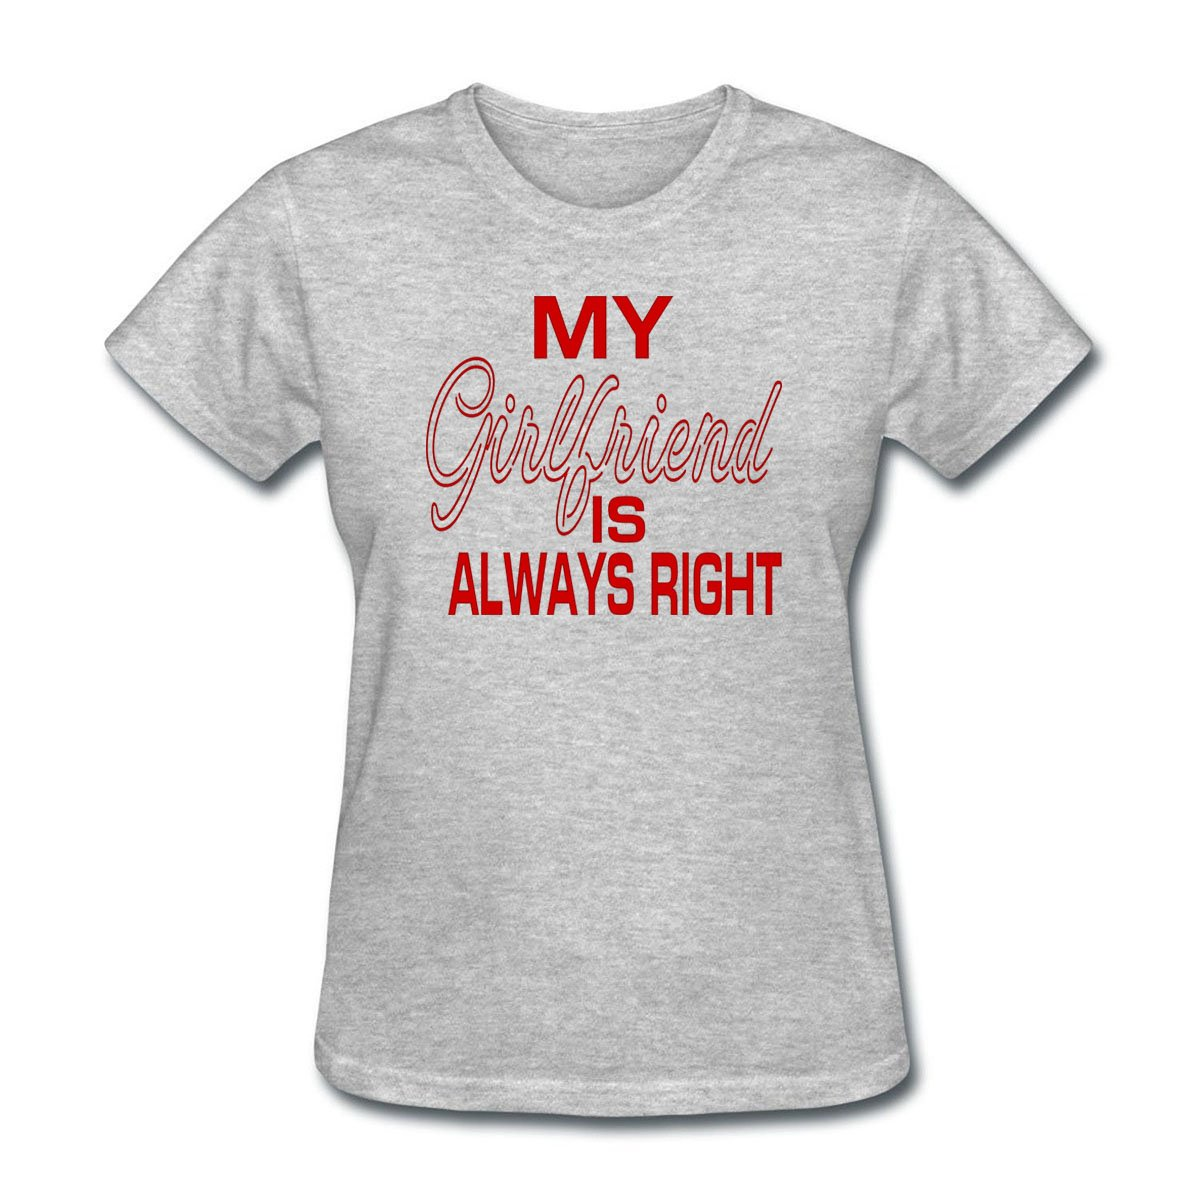 80f24379 Amazon.com: FPPING Women's My Girlfriend is Always Right T-Shirt: Clothing